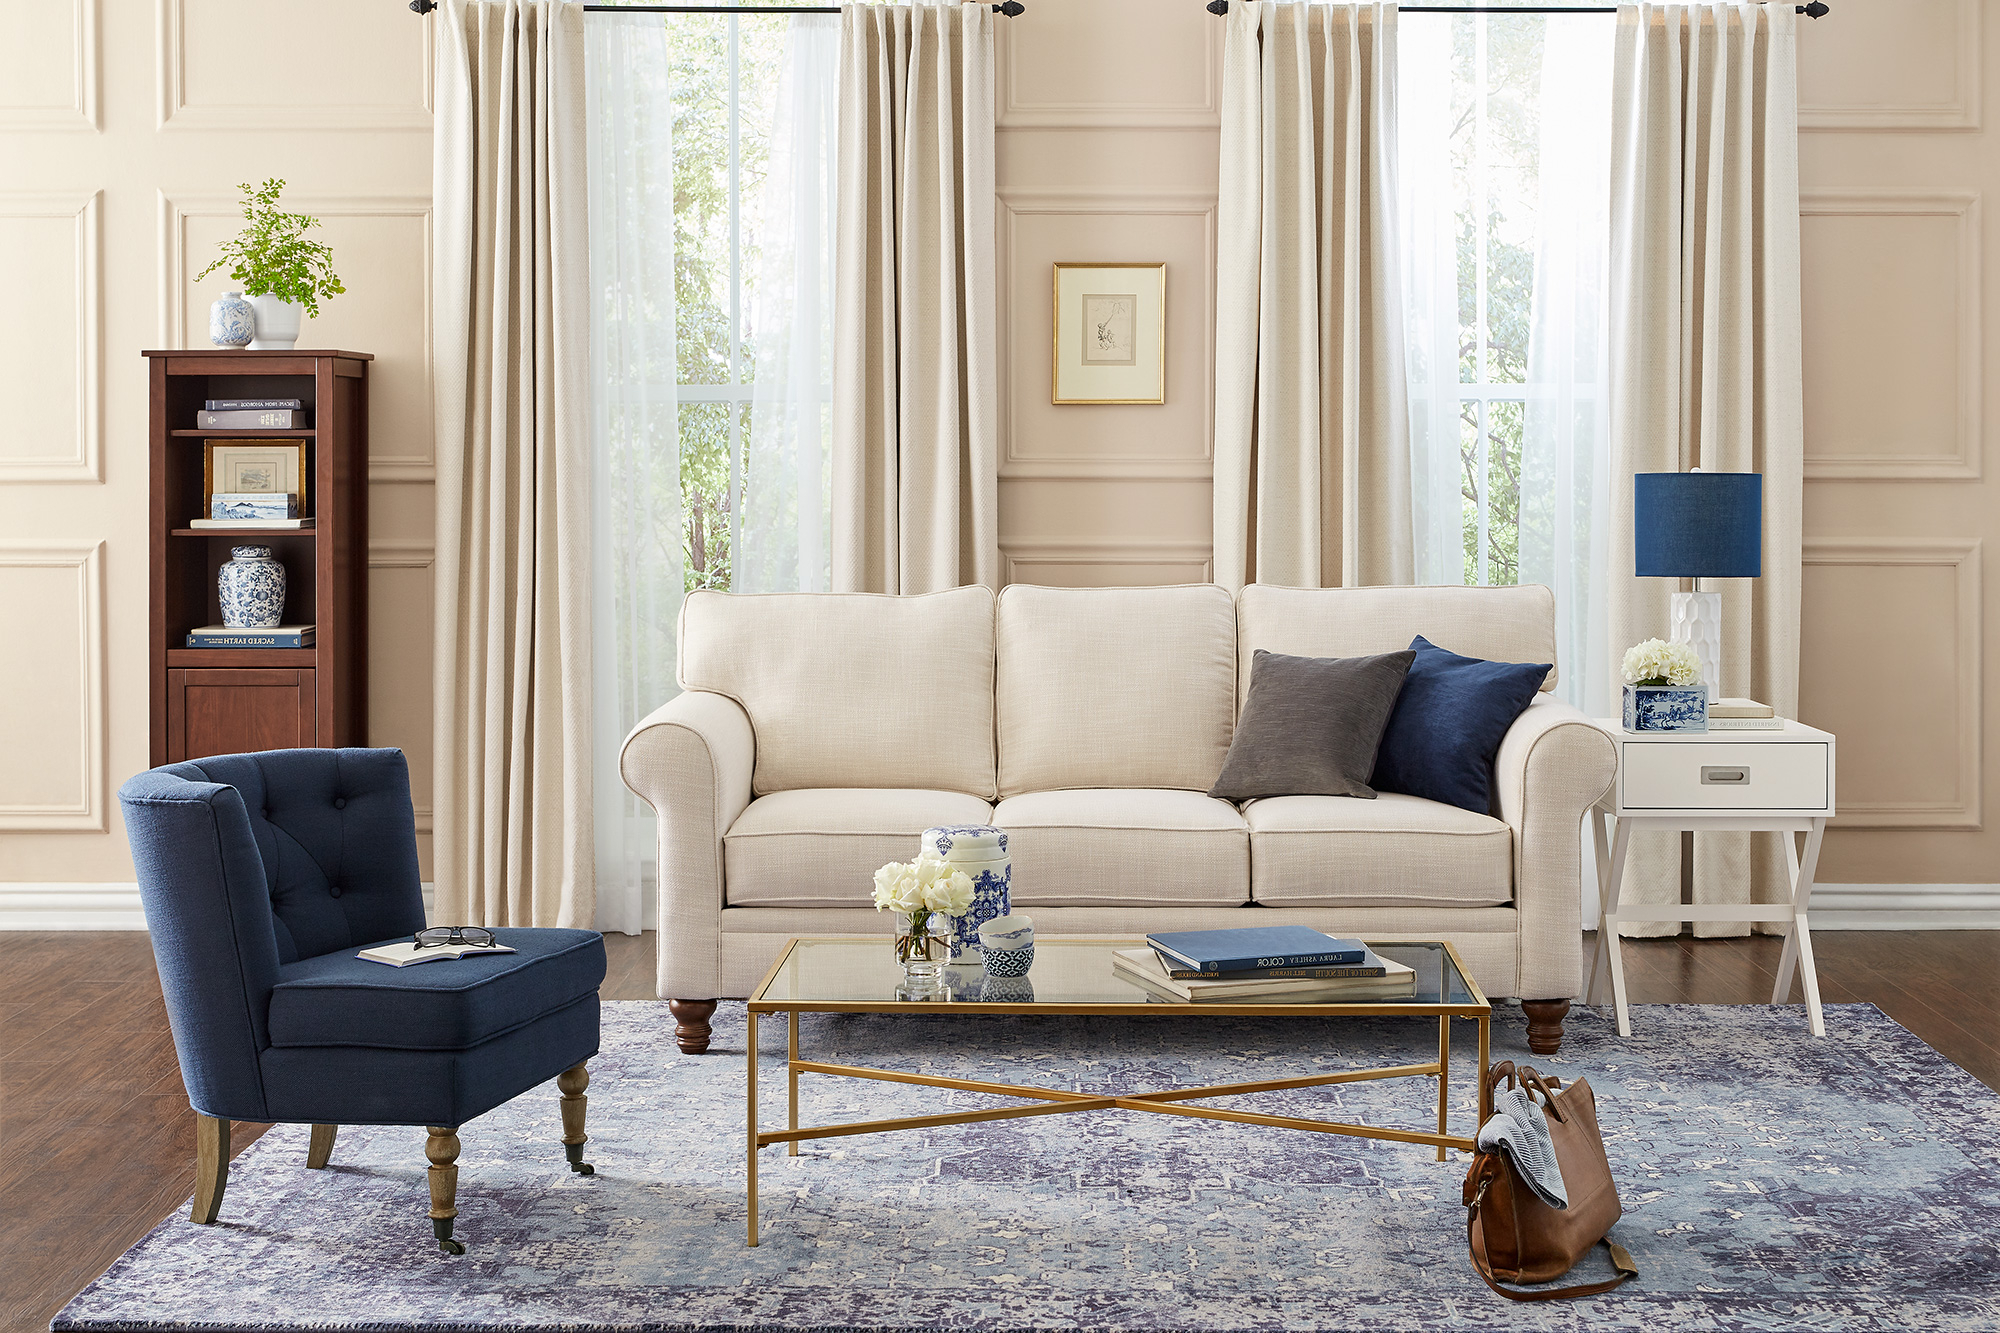 [%Get The Deal! 6% Off Sierre Loveseat With Cushions Pertaining To 2020 Saleem Loveseats With Cushions|Saleem Loveseats With Cushions Pertaining To Favorite Get The Deal! 6% Off Sierre Loveseat With Cushions|Newest Saleem Loveseats With Cushions Within Get The Deal! 6% Off Sierre Loveseat With Cushions|Favorite Get The Deal! 6% Off Sierre Loveseat With Cushions For Saleem Loveseats With Cushions%] (View 2 of 25)